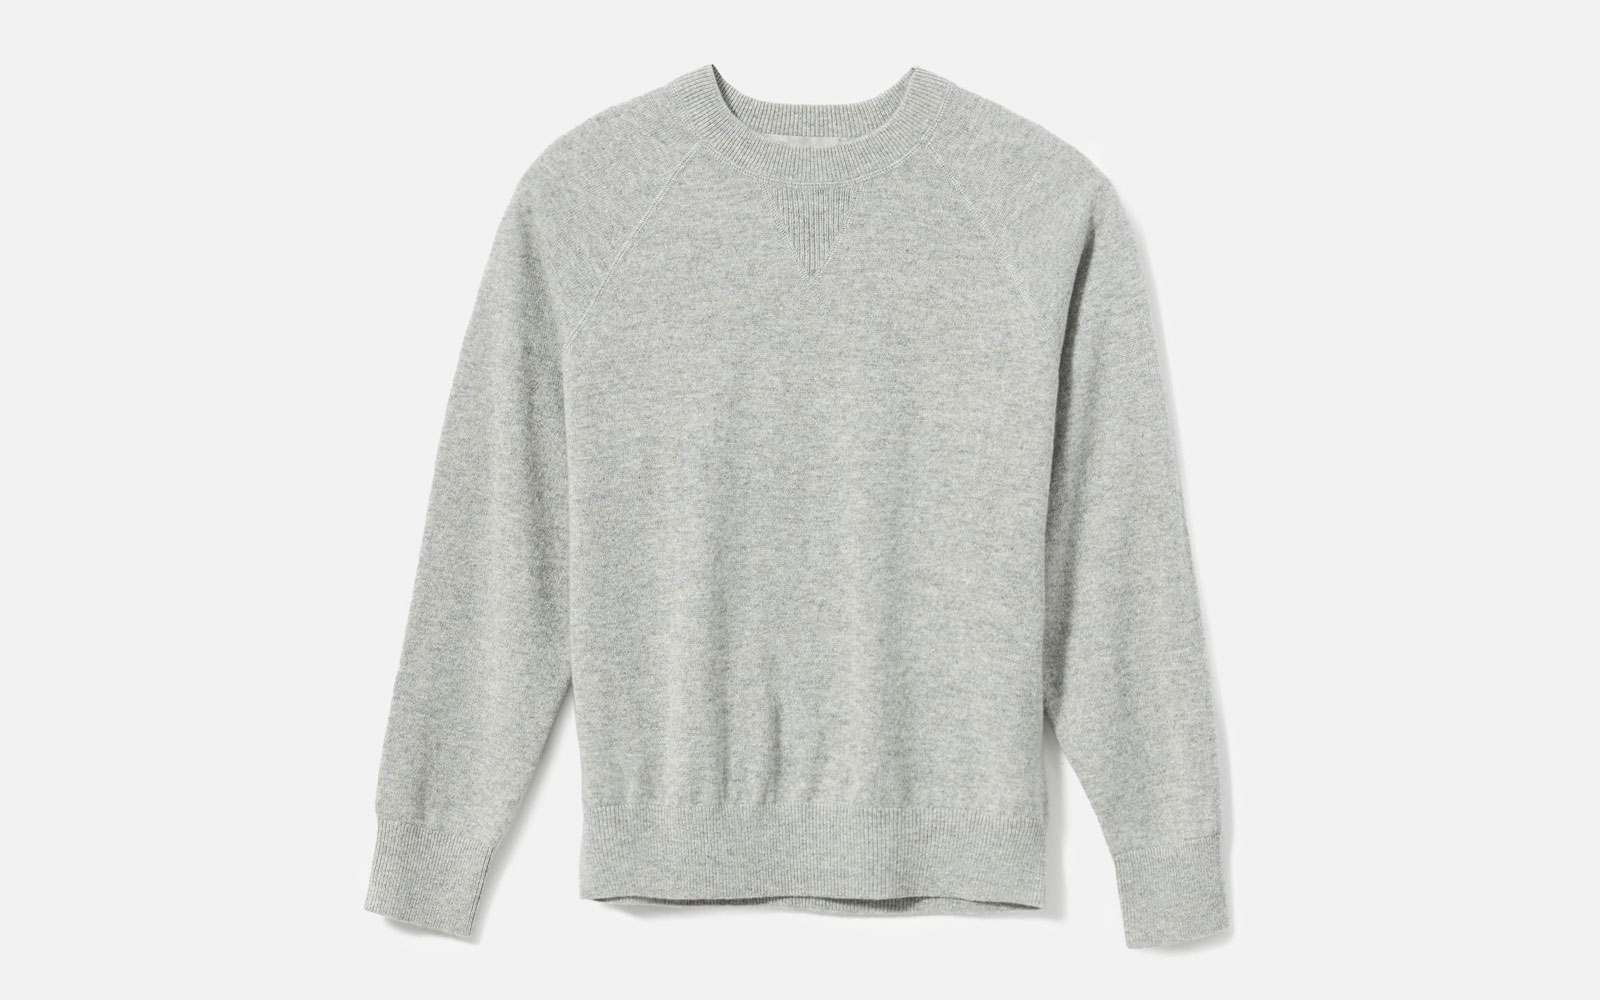 Grey Cashmere Crewneck Sweater